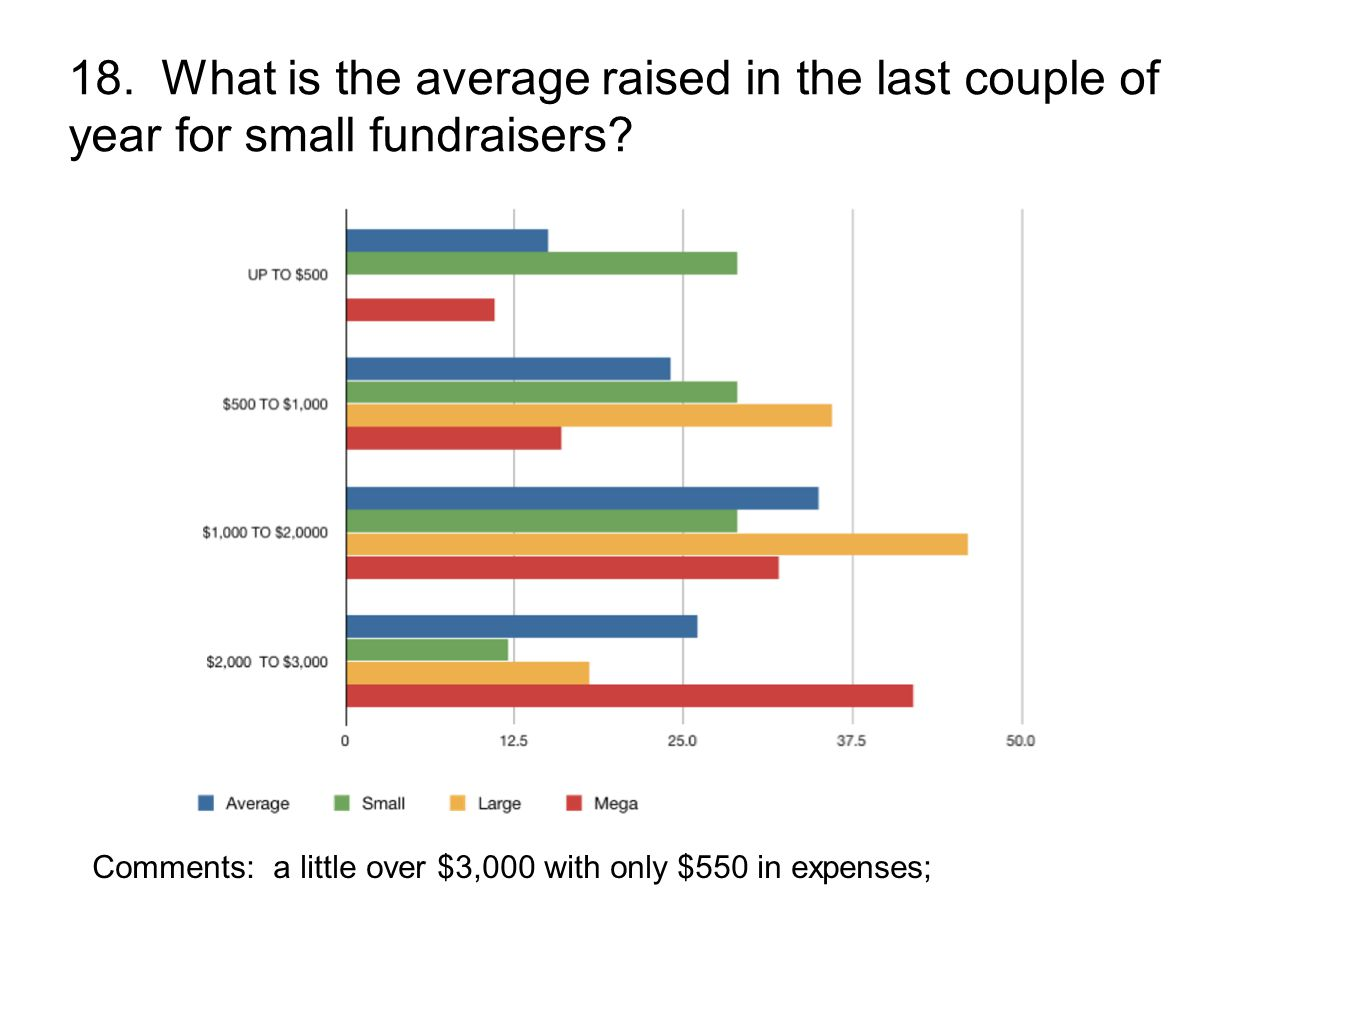 18. What is the average raised in the last couple of year for small fundraisers.